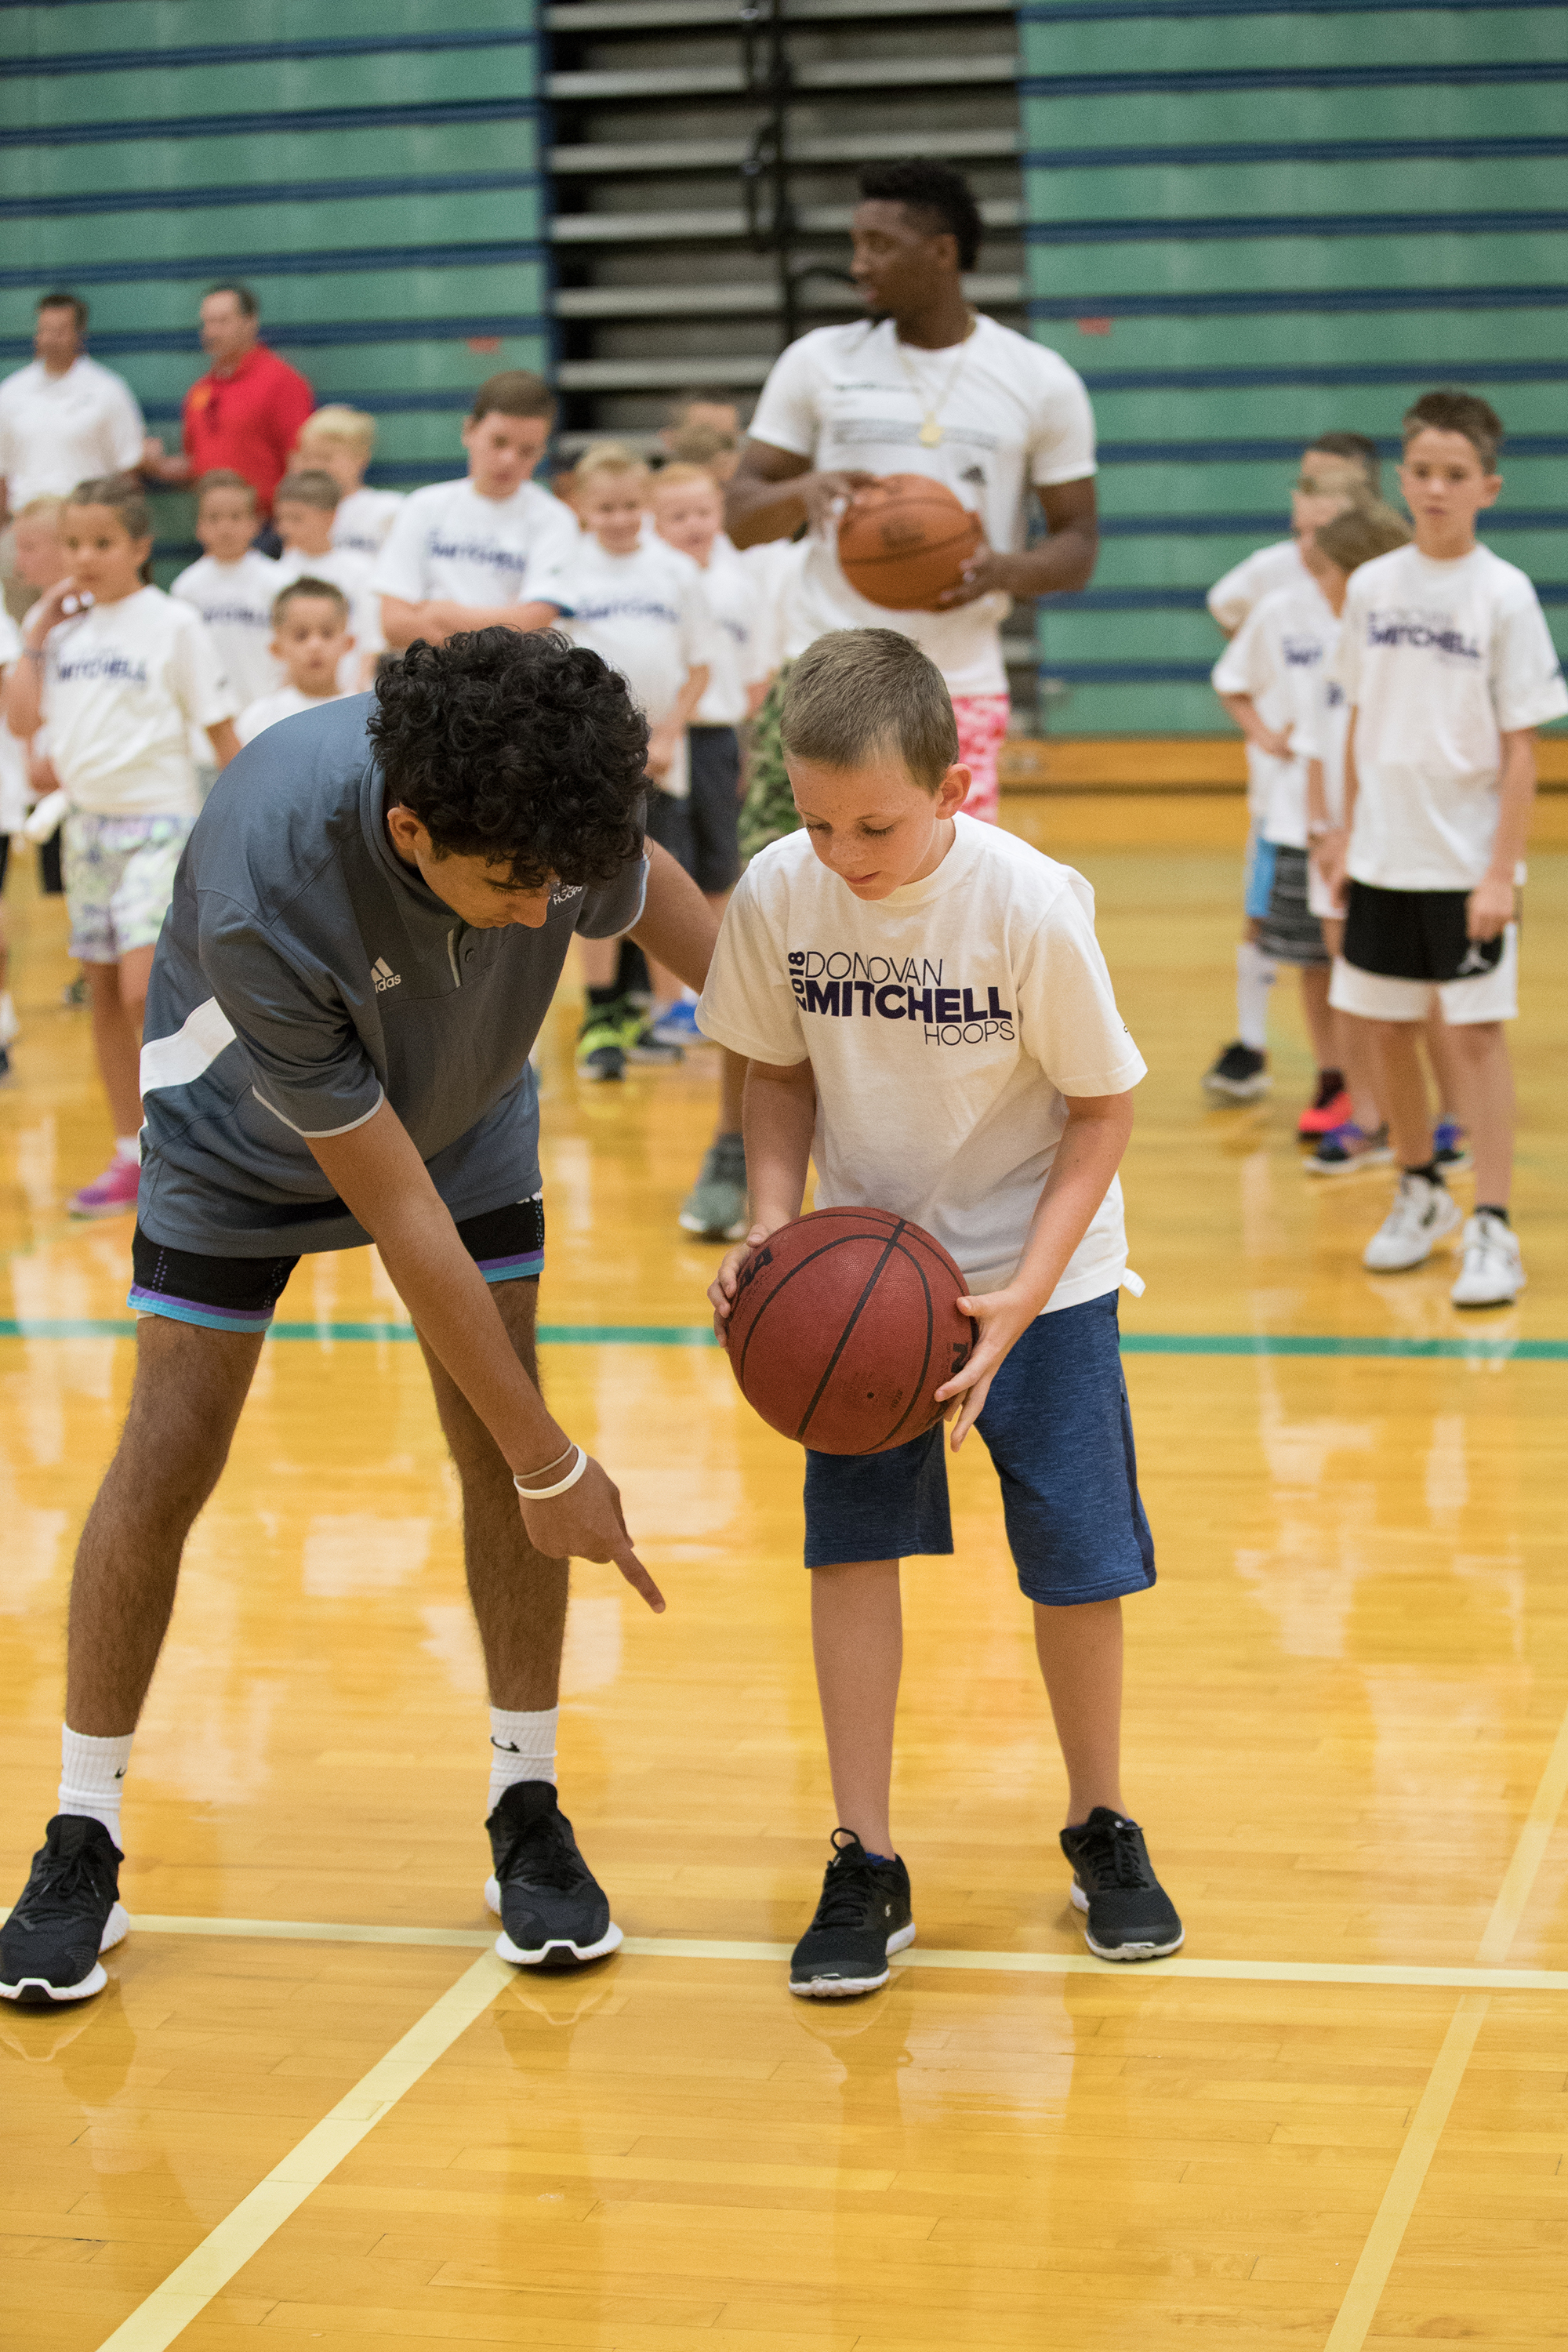 180730-donovan-mitchell-camp-session-1b-WH-2947.jpg